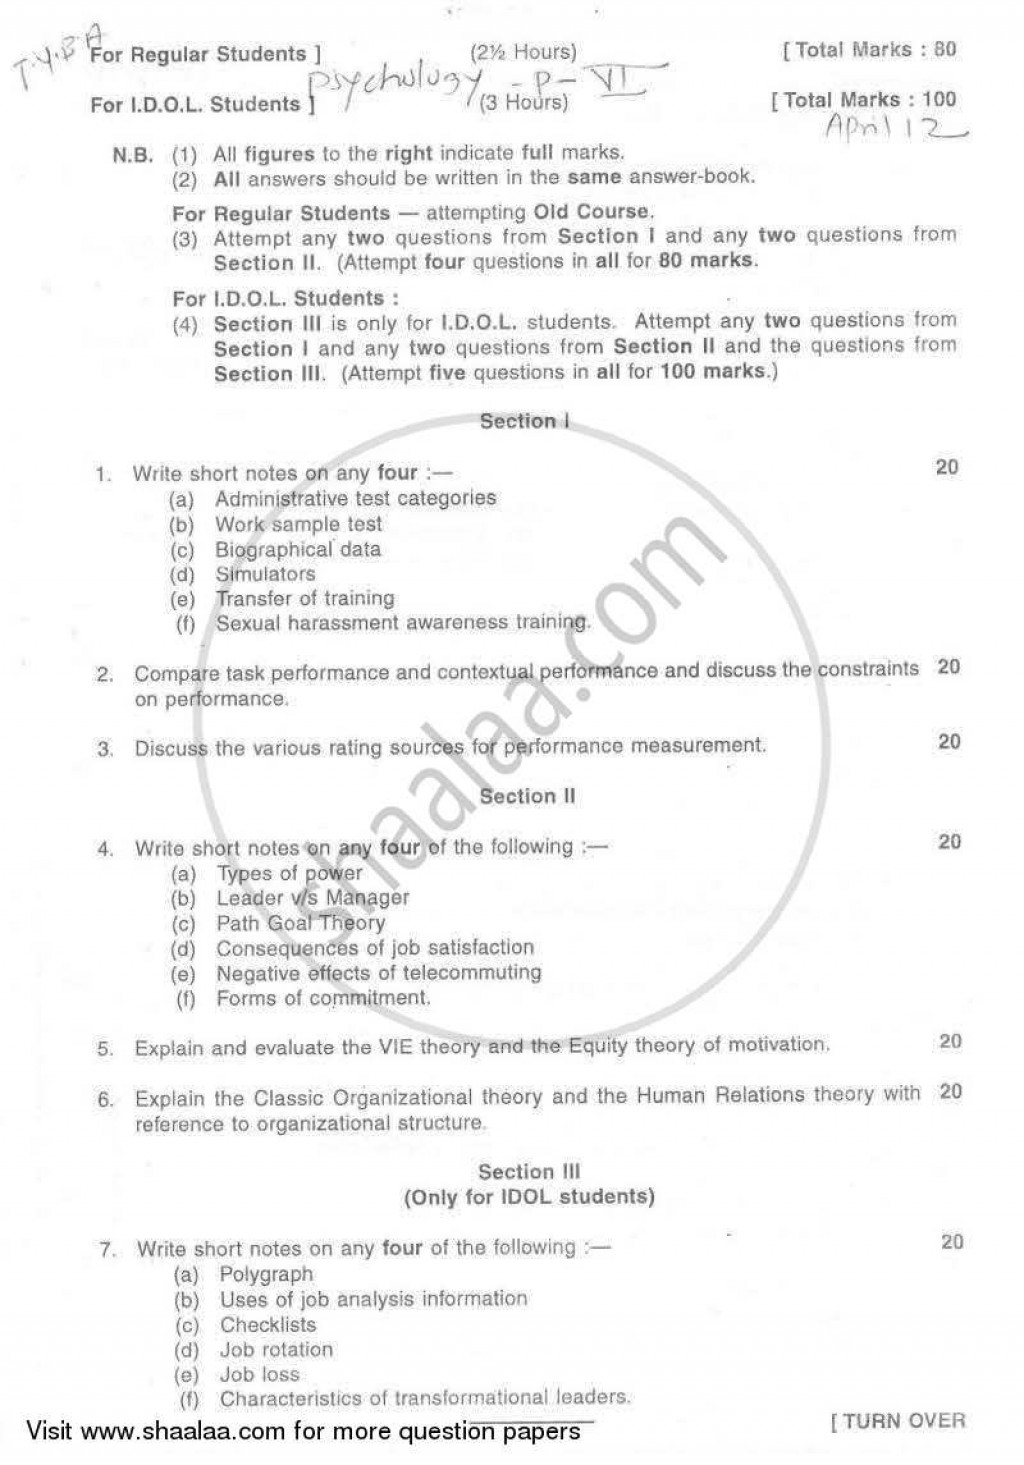 017 Psychologyearch Paper On Dreams University Of Mumbai Bachelor Industrial Organizational T Y Yearly Pattern Semester Tyba 2011 29a03925dfc524f2aa4cb10e4d3da996a Singular Psychology Research Large